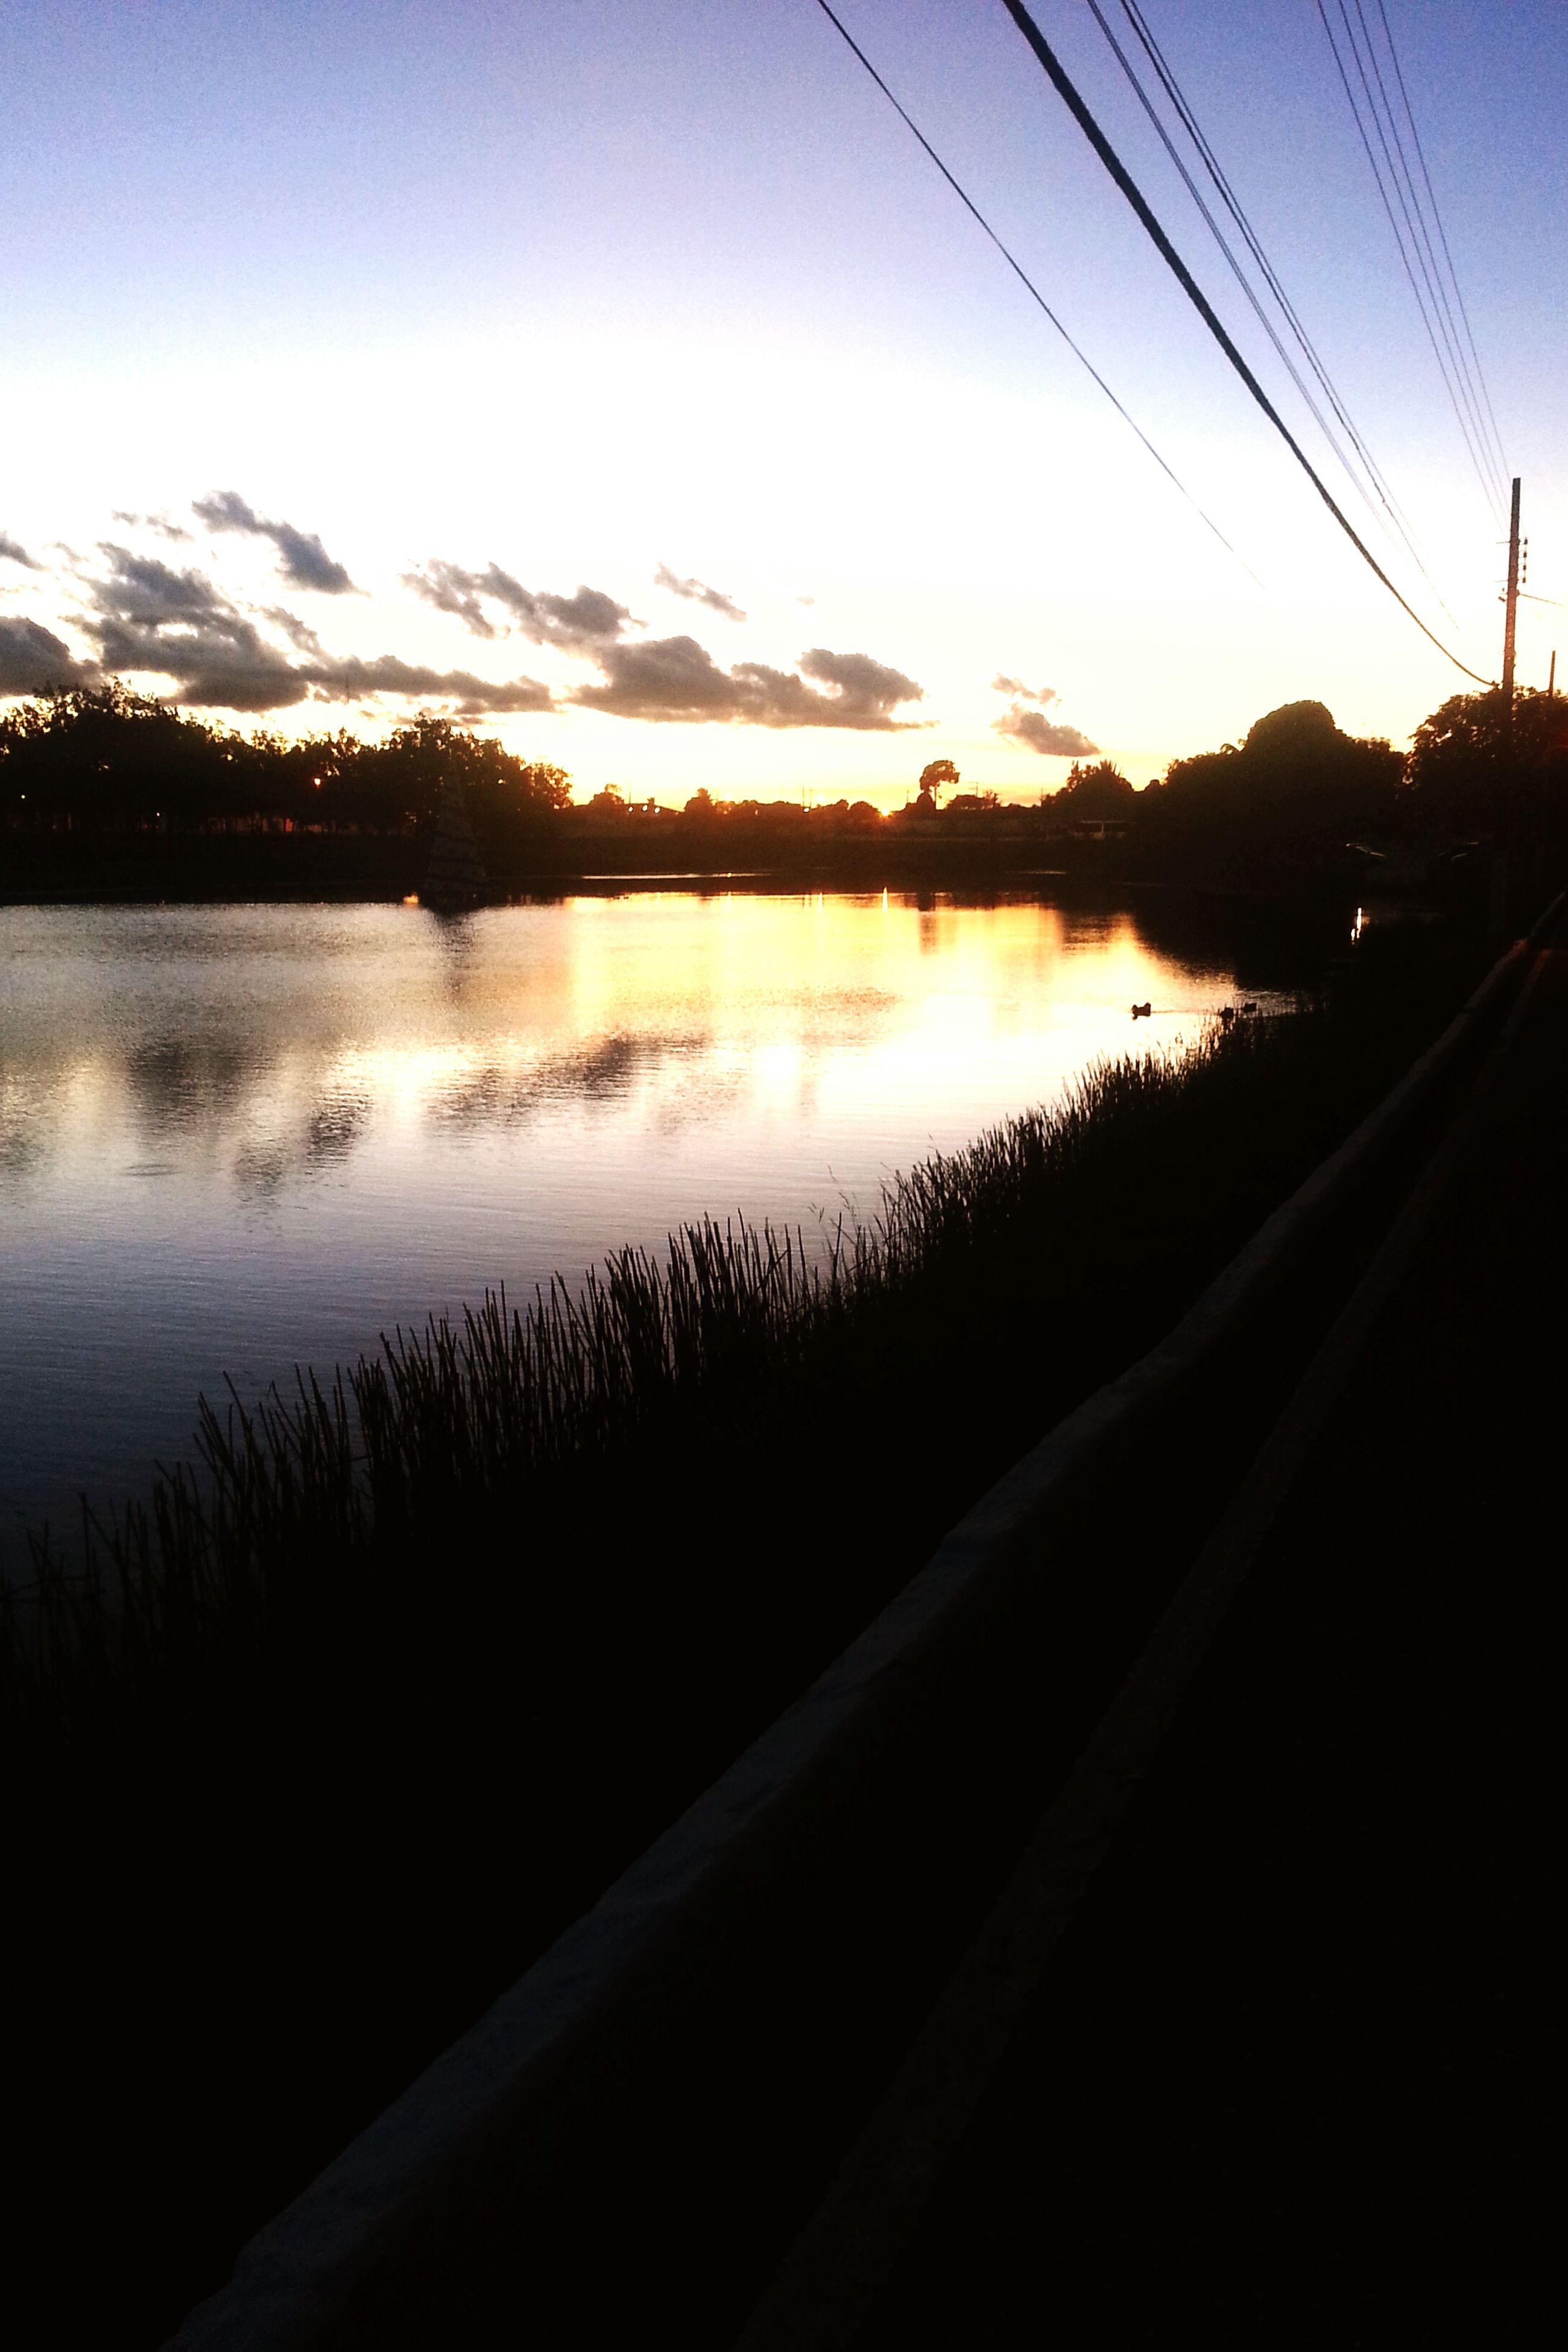 sunset, water, reflection, silhouette, lake, sky, tranquil scene, scenics, tranquility, sun, beauty in nature, river, nature, tree, sunlight, orange color, transportation, electricity pylon, idyllic, power line